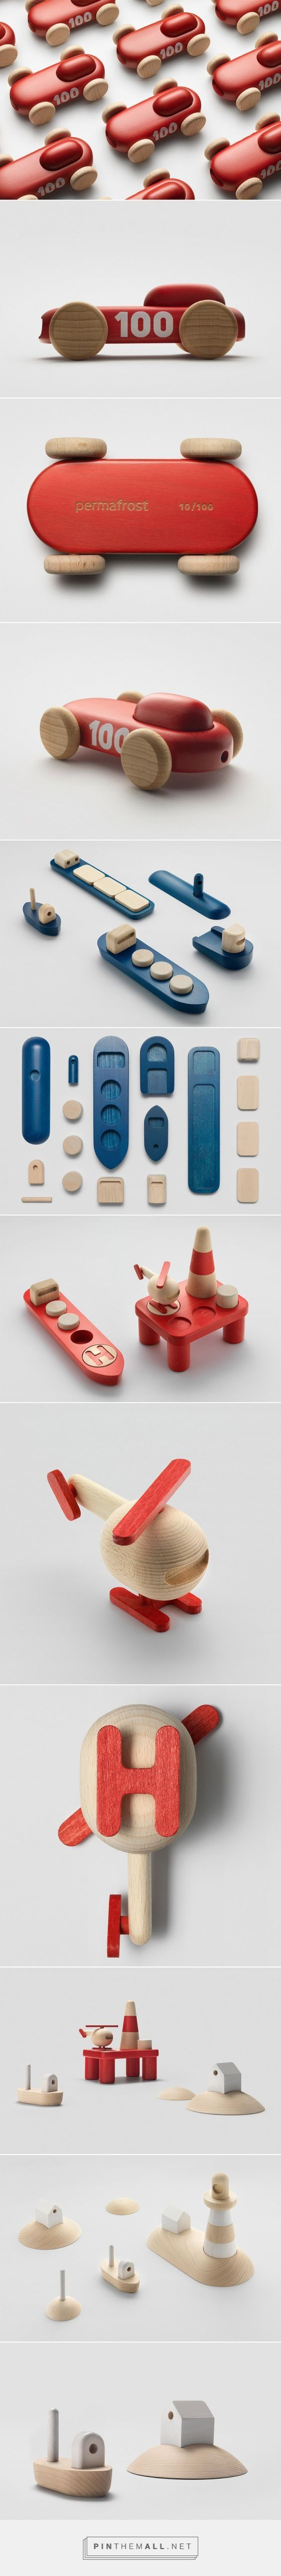 Wooden Toys by Permafrost | Inspiration Grid | Design Inspiration - created via http://pinthemall.net: